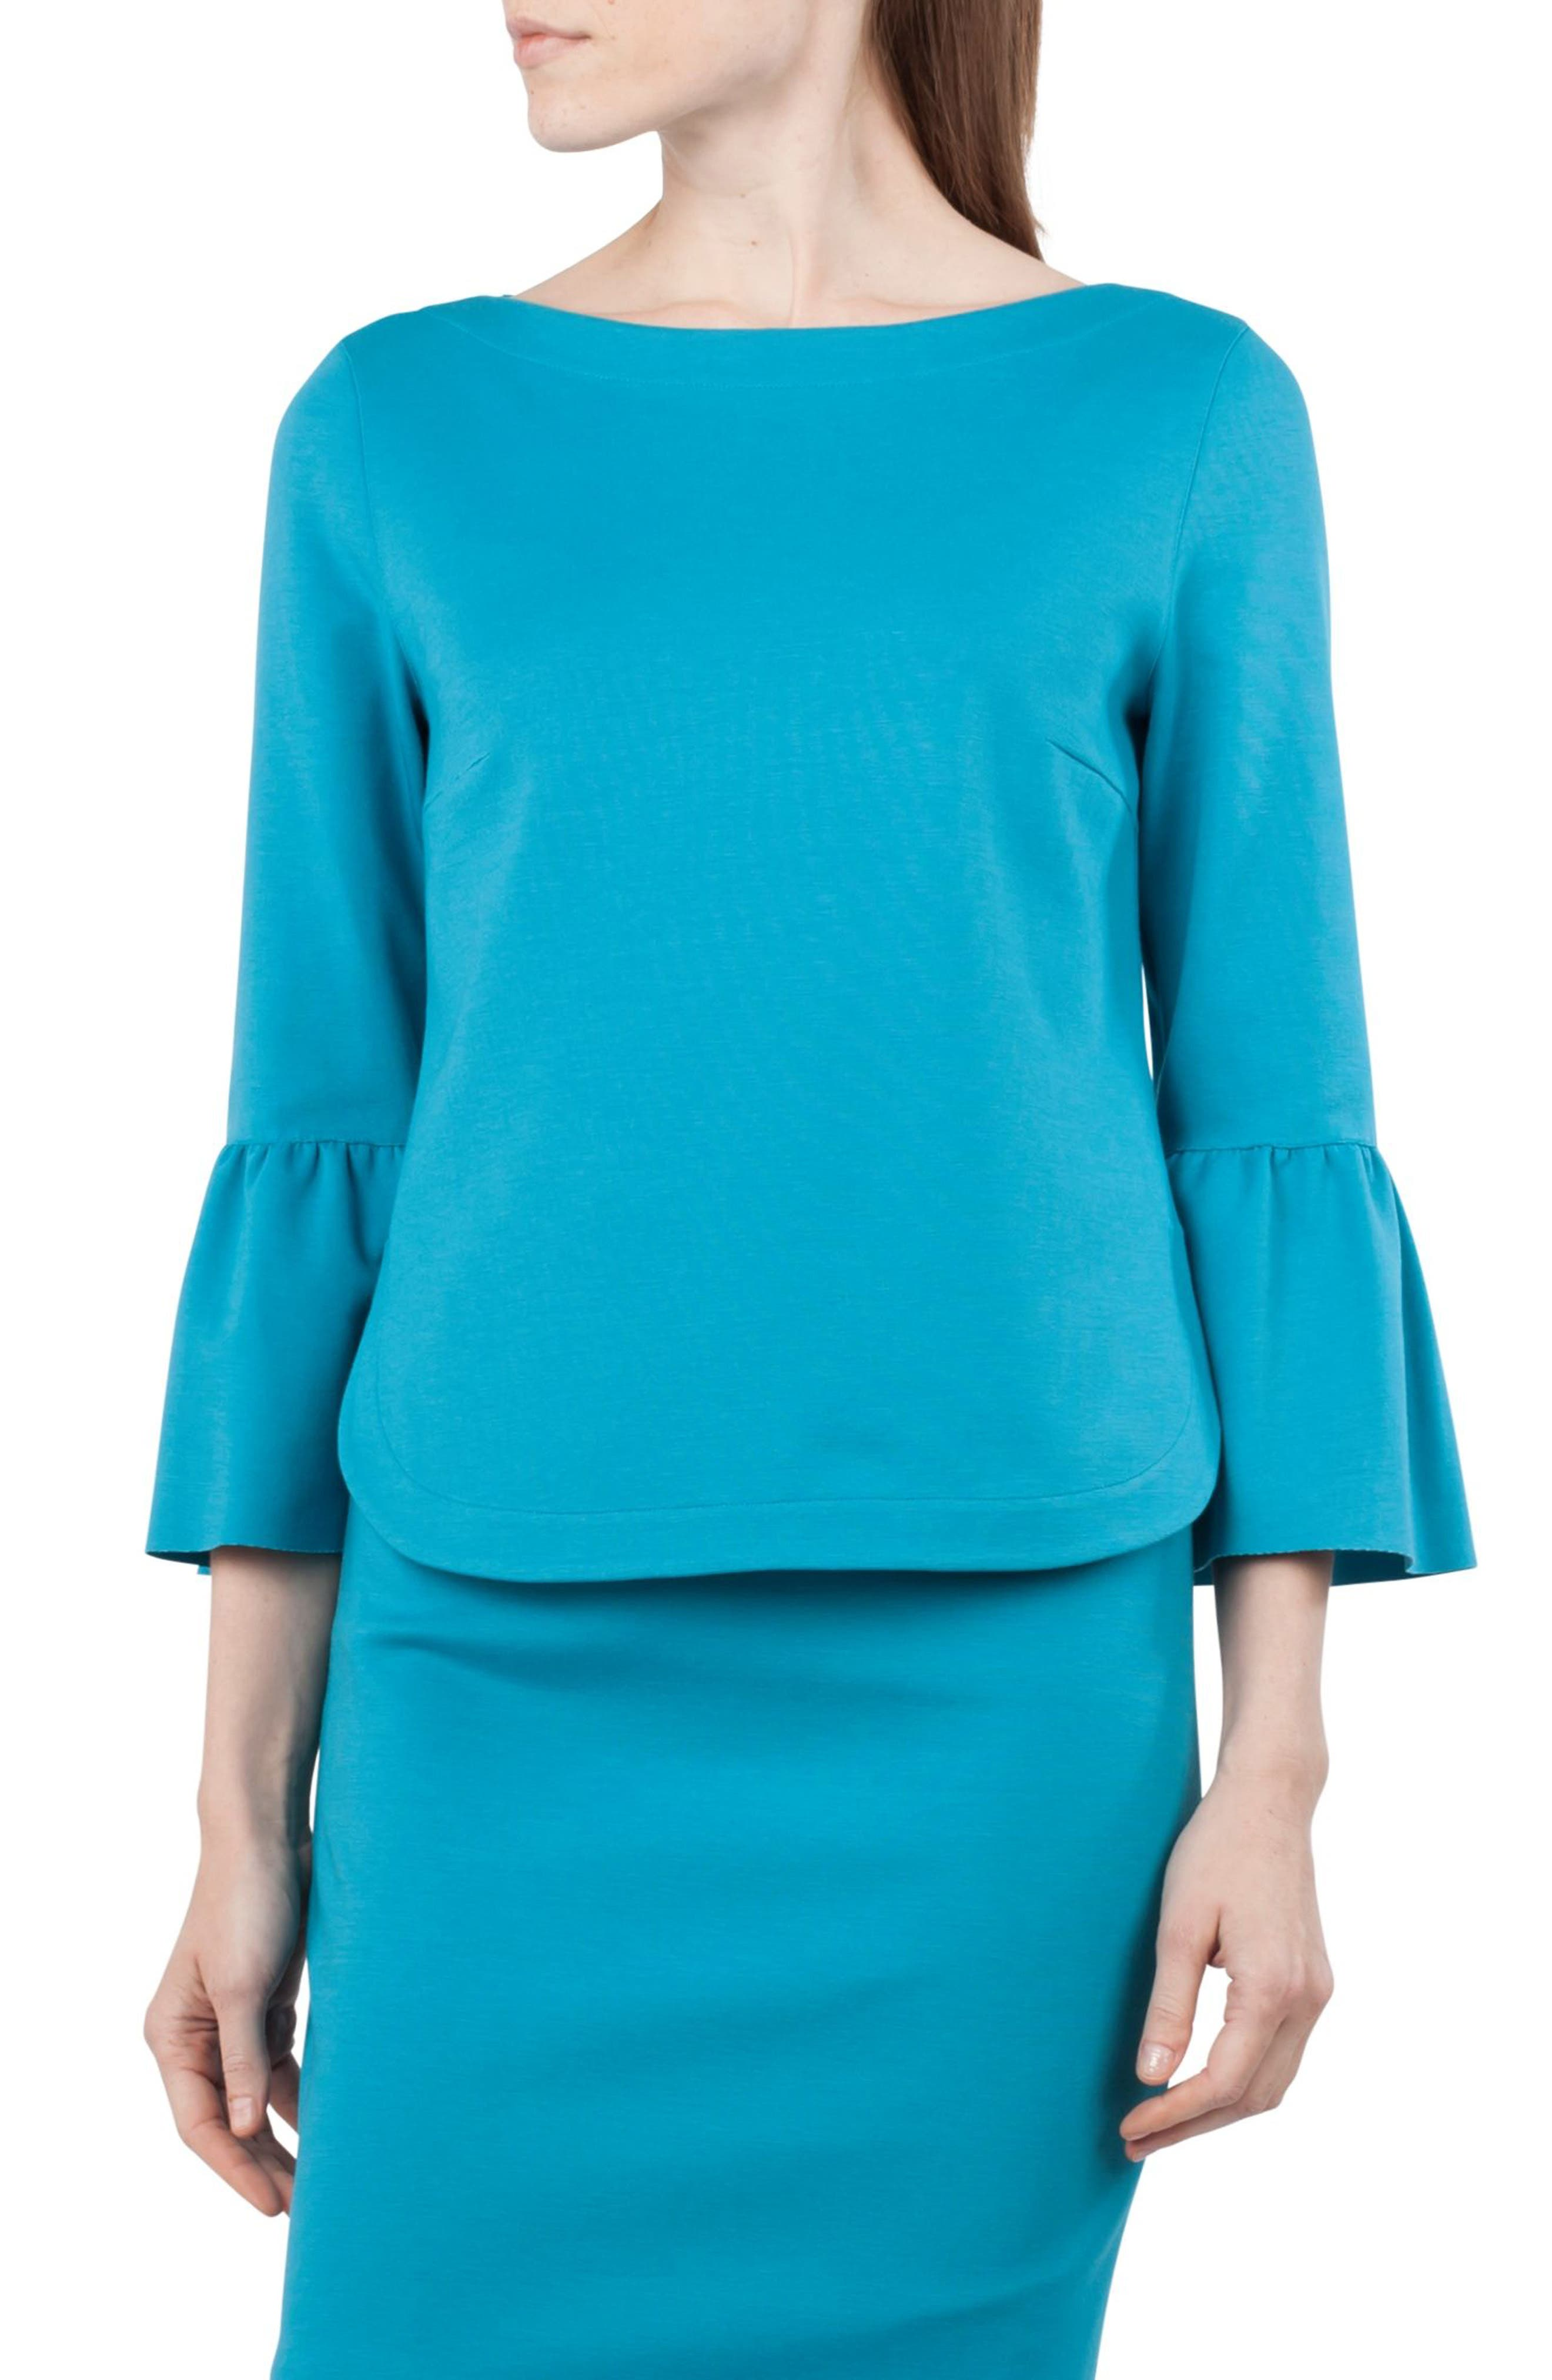 Ruffle Sleeve Top,                         Main,                         color, Turquoise